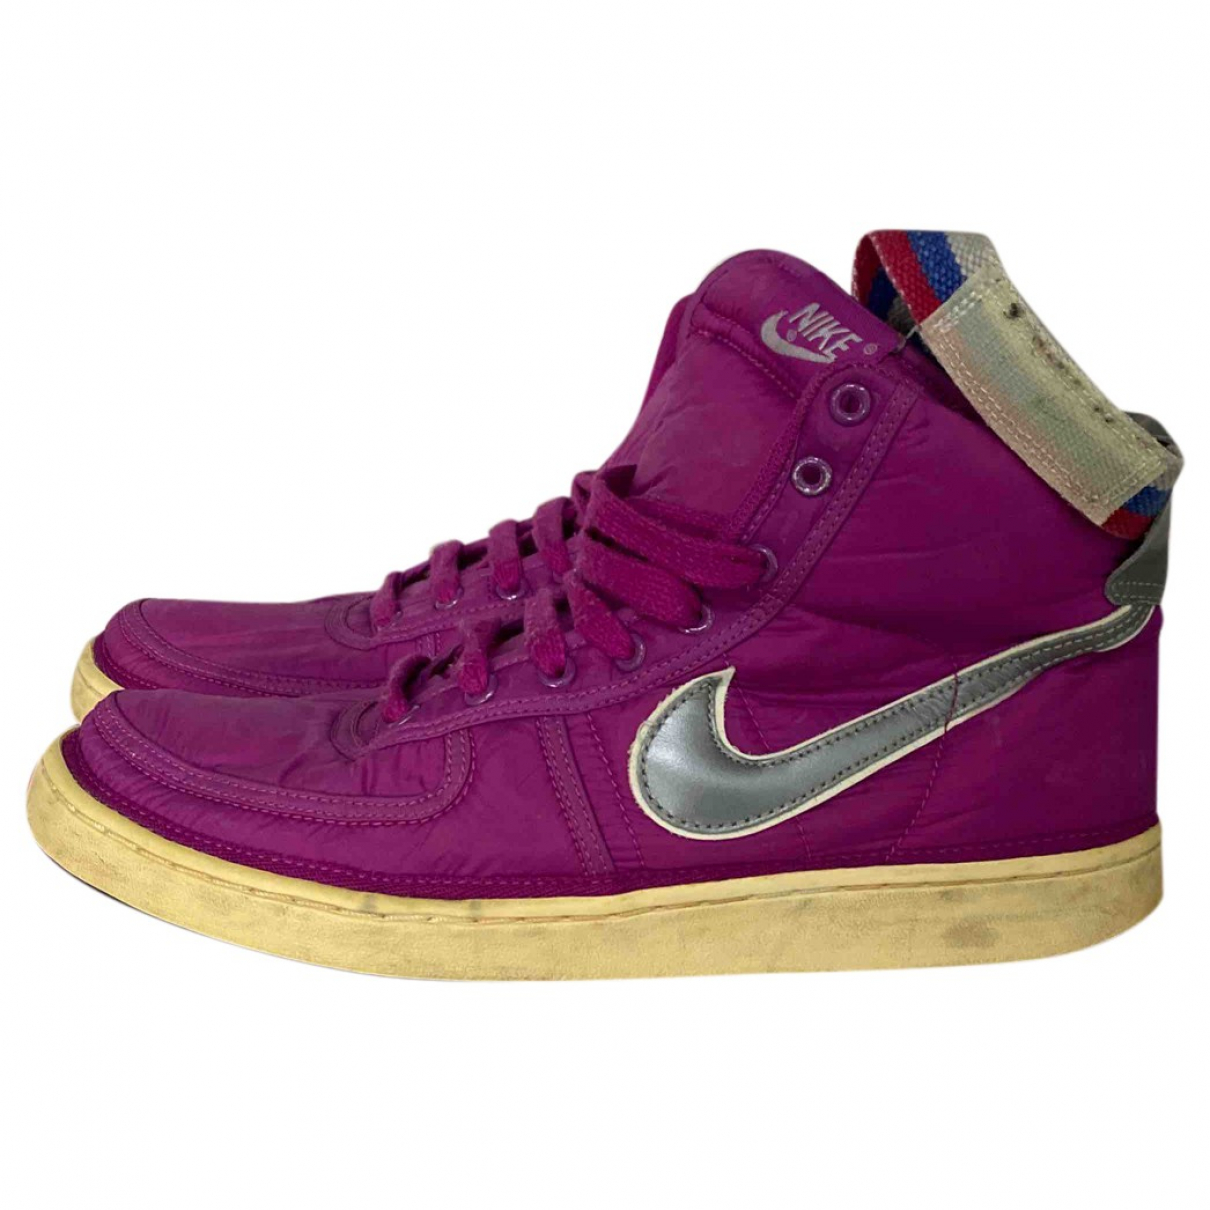 Nike \N Sneakers in Leinen